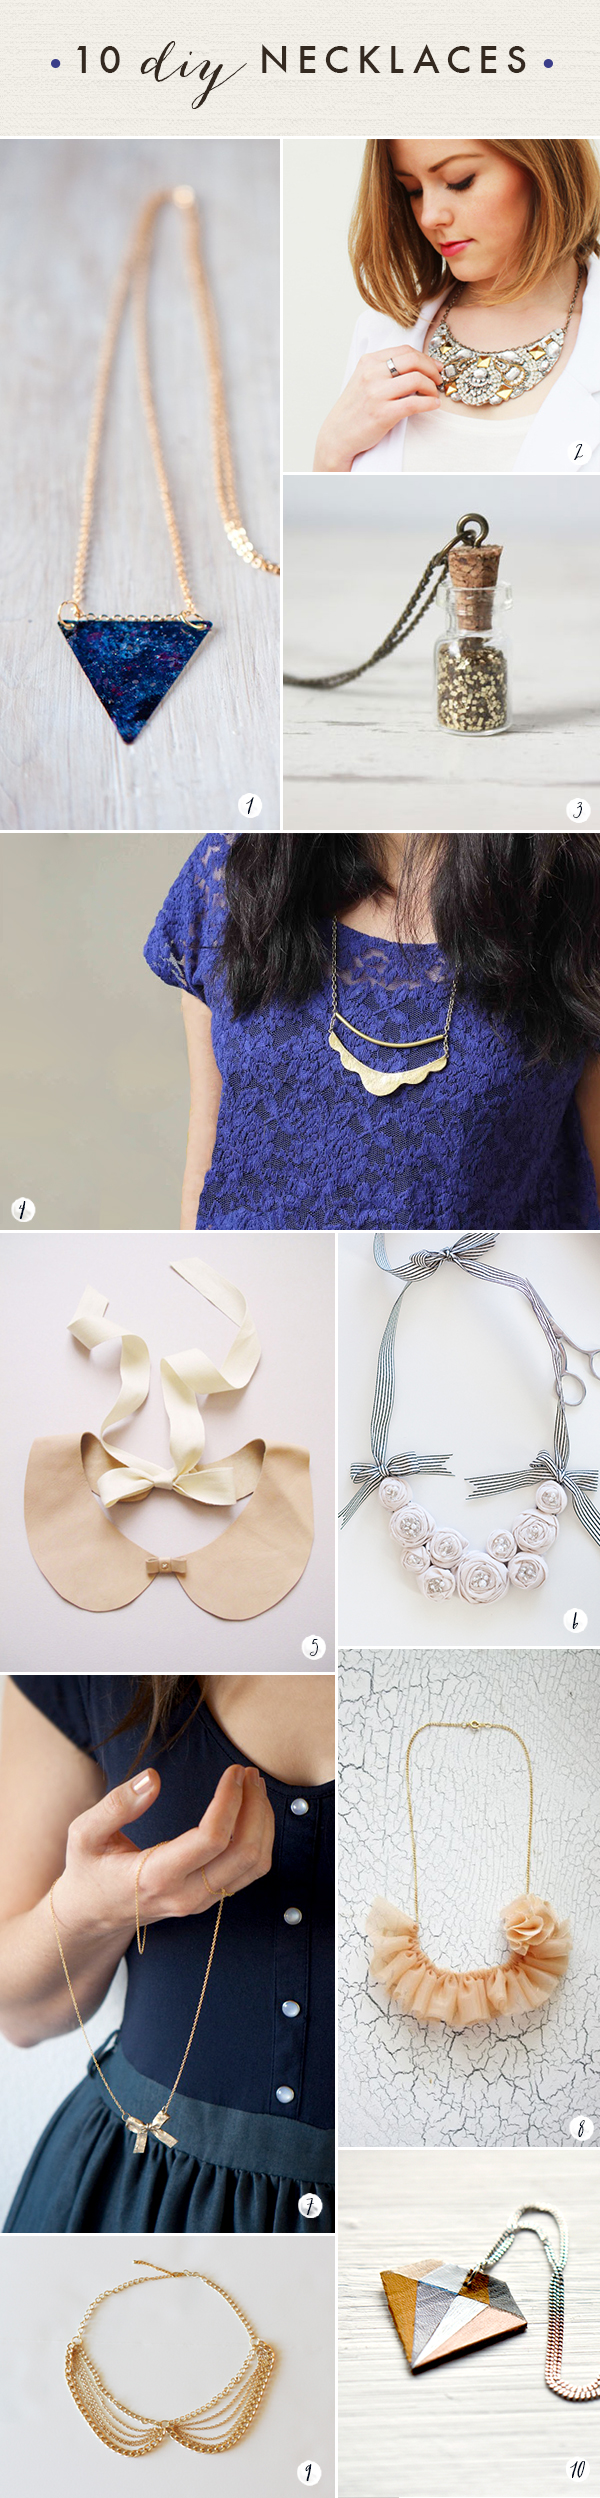 10-diy-necklaces